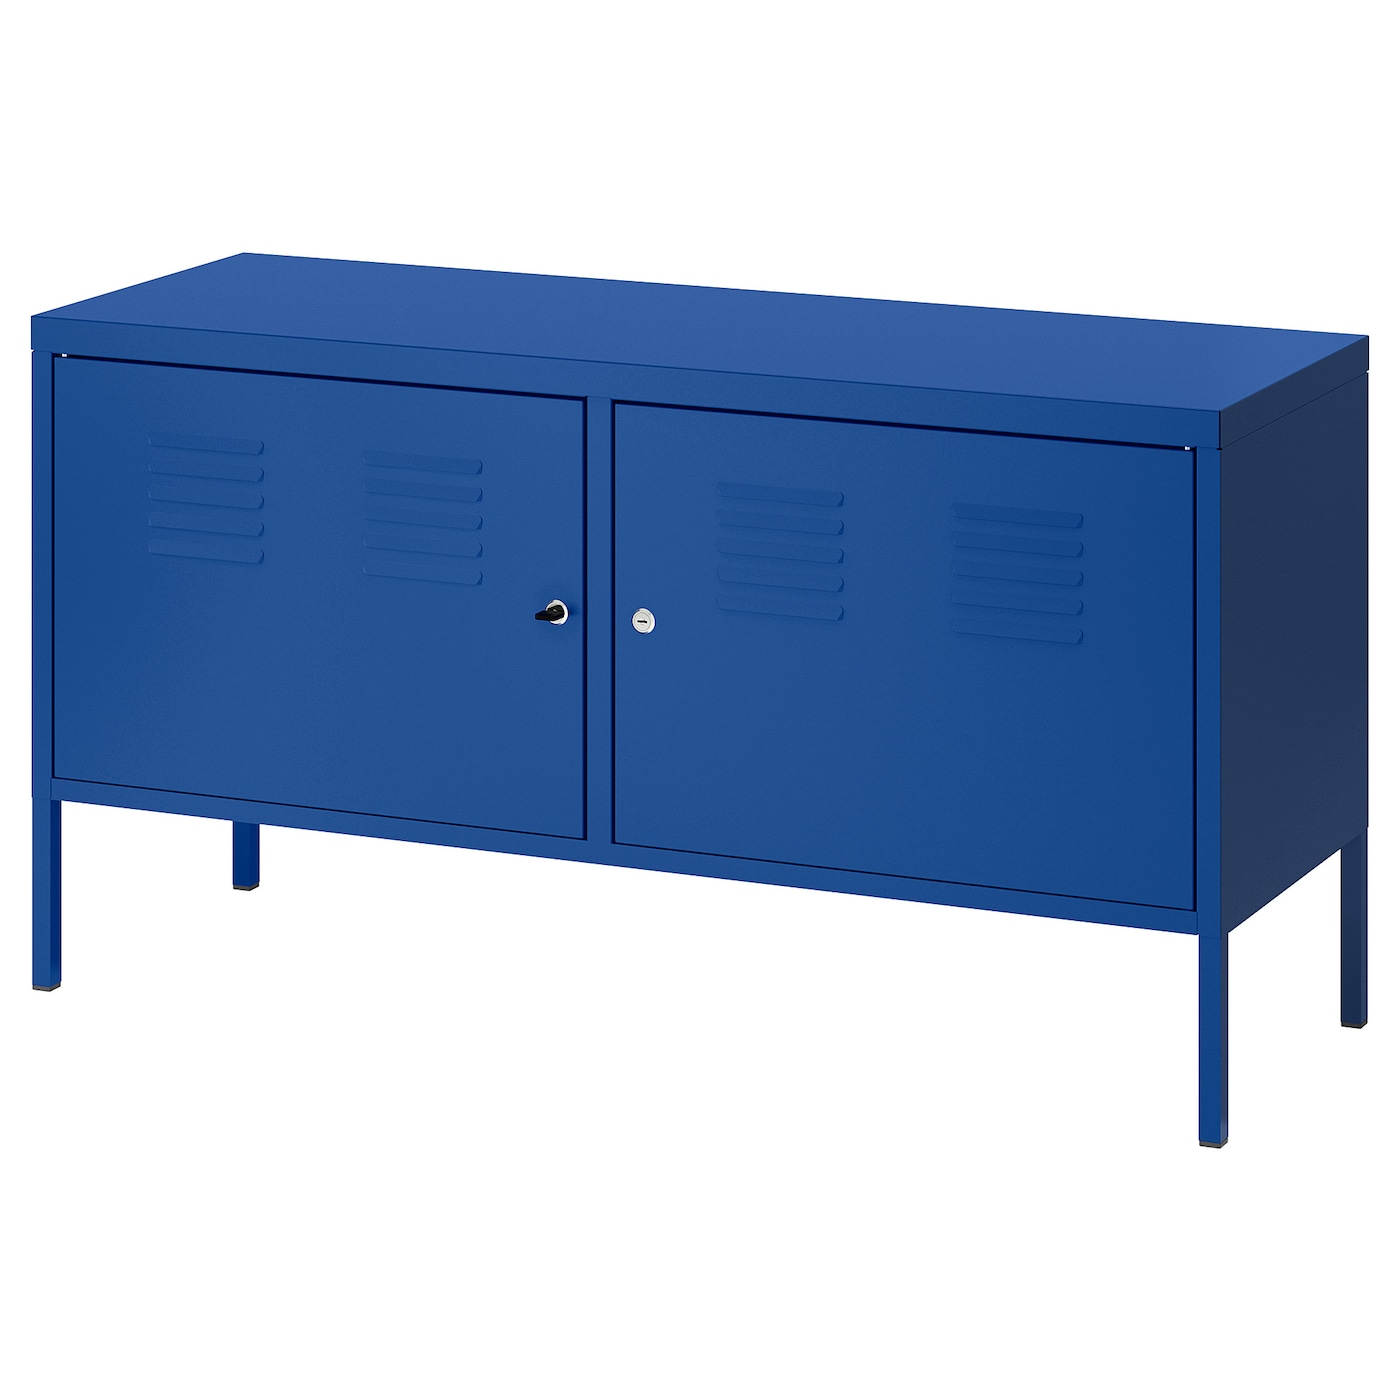 Picture of: Ikea Ps Cabinet Blue 46 7 8×24 3 4 Ikea